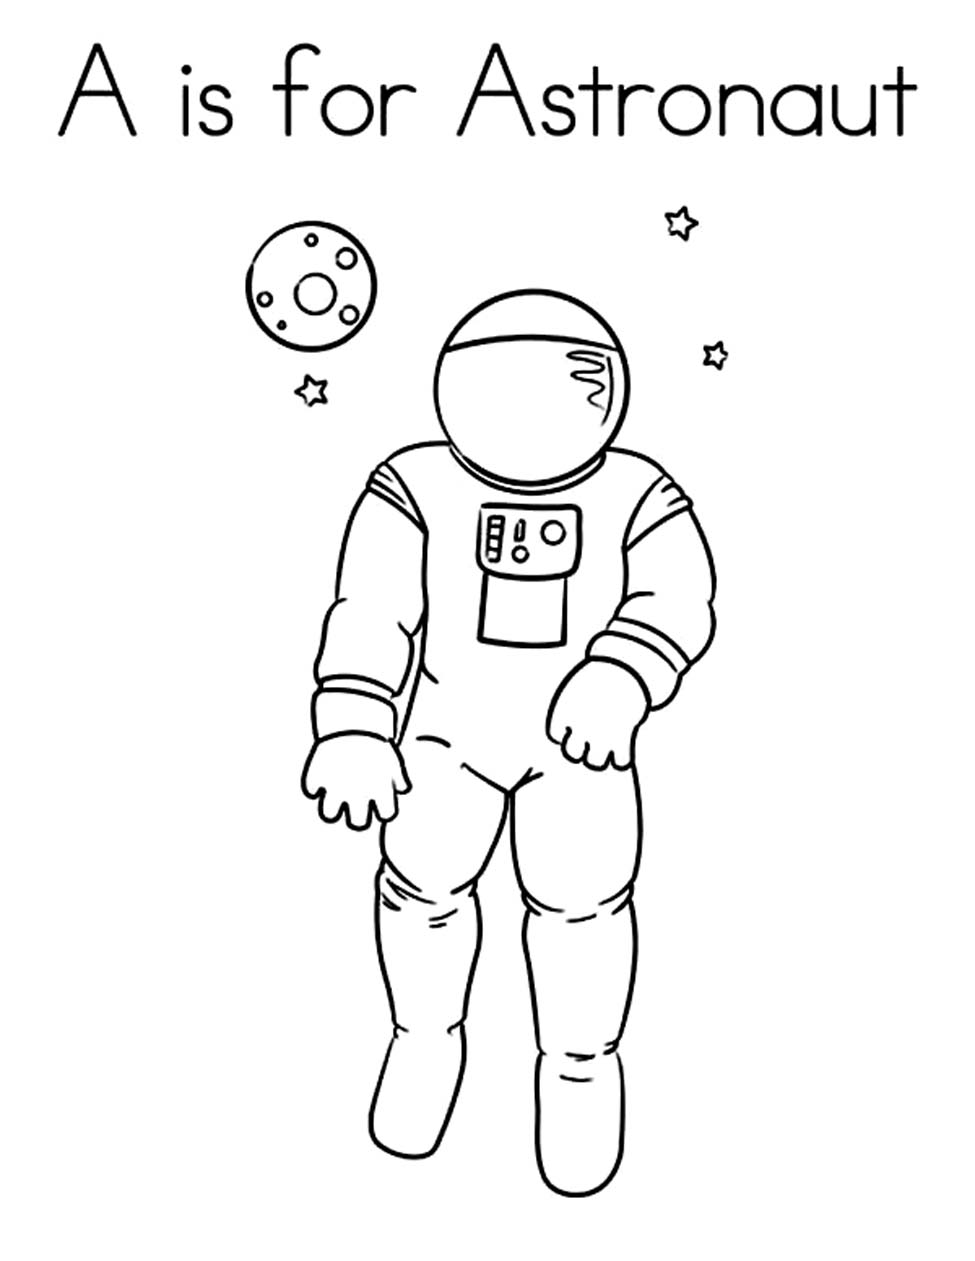 astronaut coloring for kids man in space suit coloring images coloring pages for kids coloring astronaut